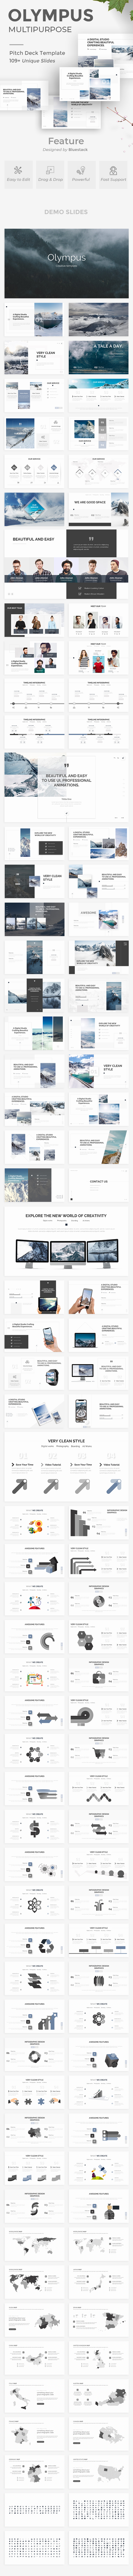 Olympus Creative Powerpoint Template - Creative PowerPoint Templates